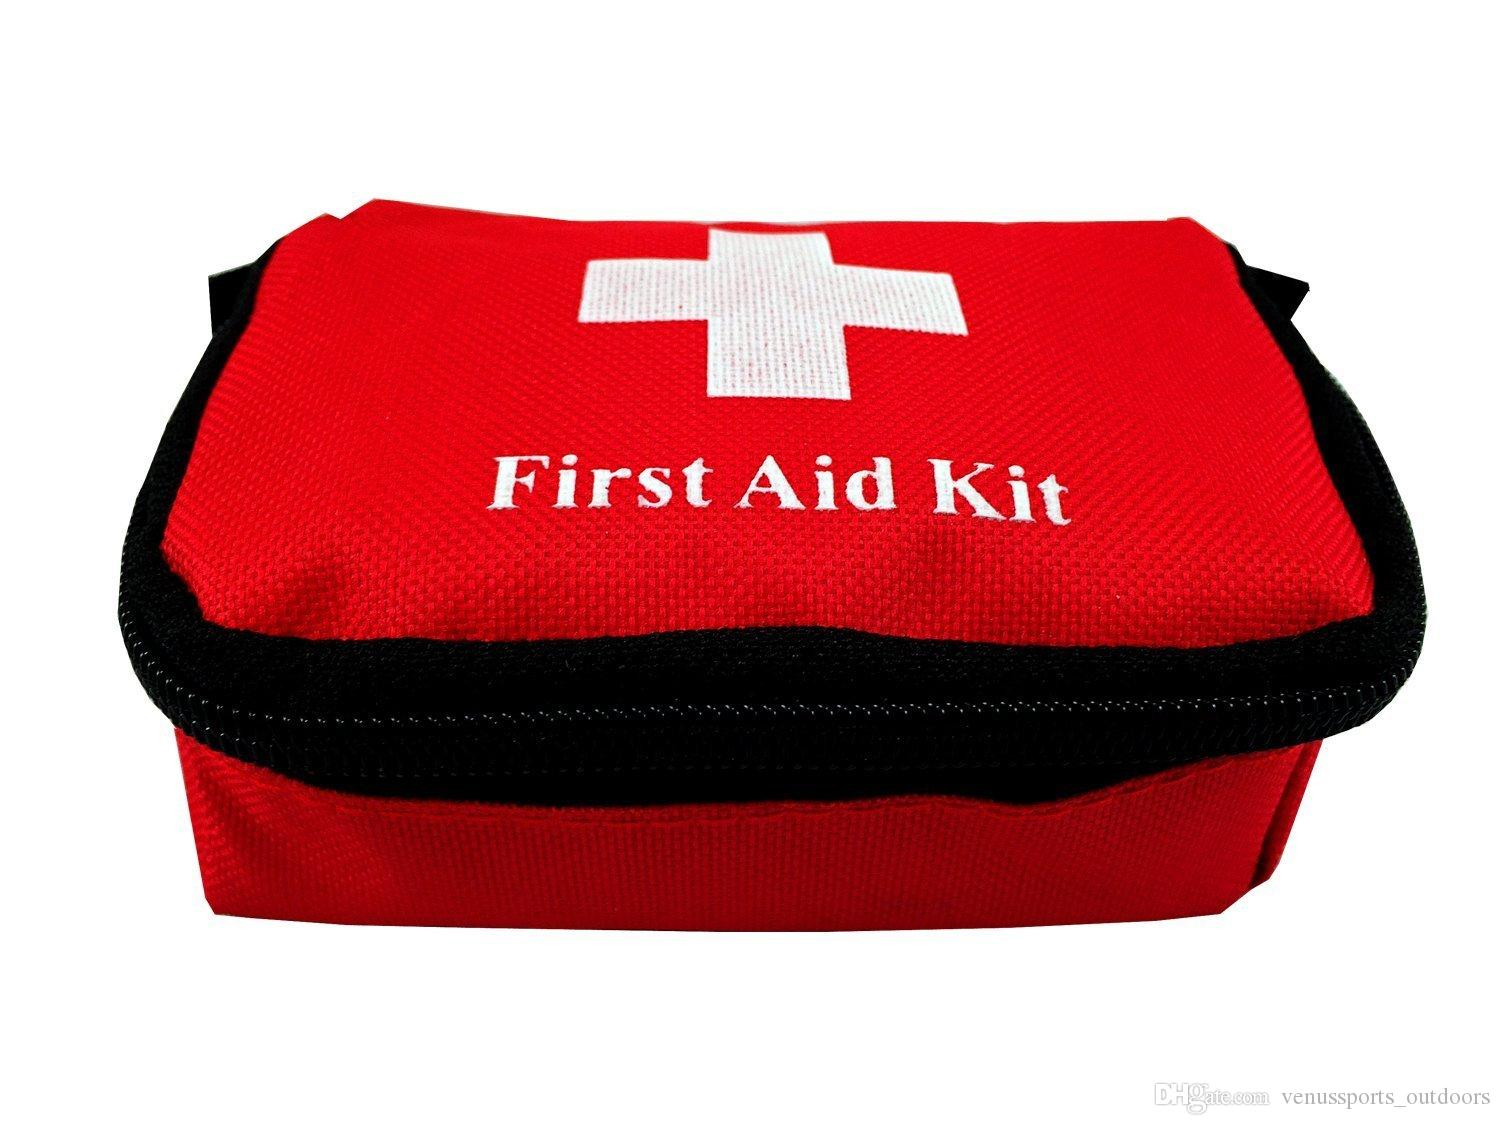 Outdoor Bags Travel Sports Home Medical Bag Outdoor Car Emergency Survival Mini First Aid Kit Bag empty EDC Bag